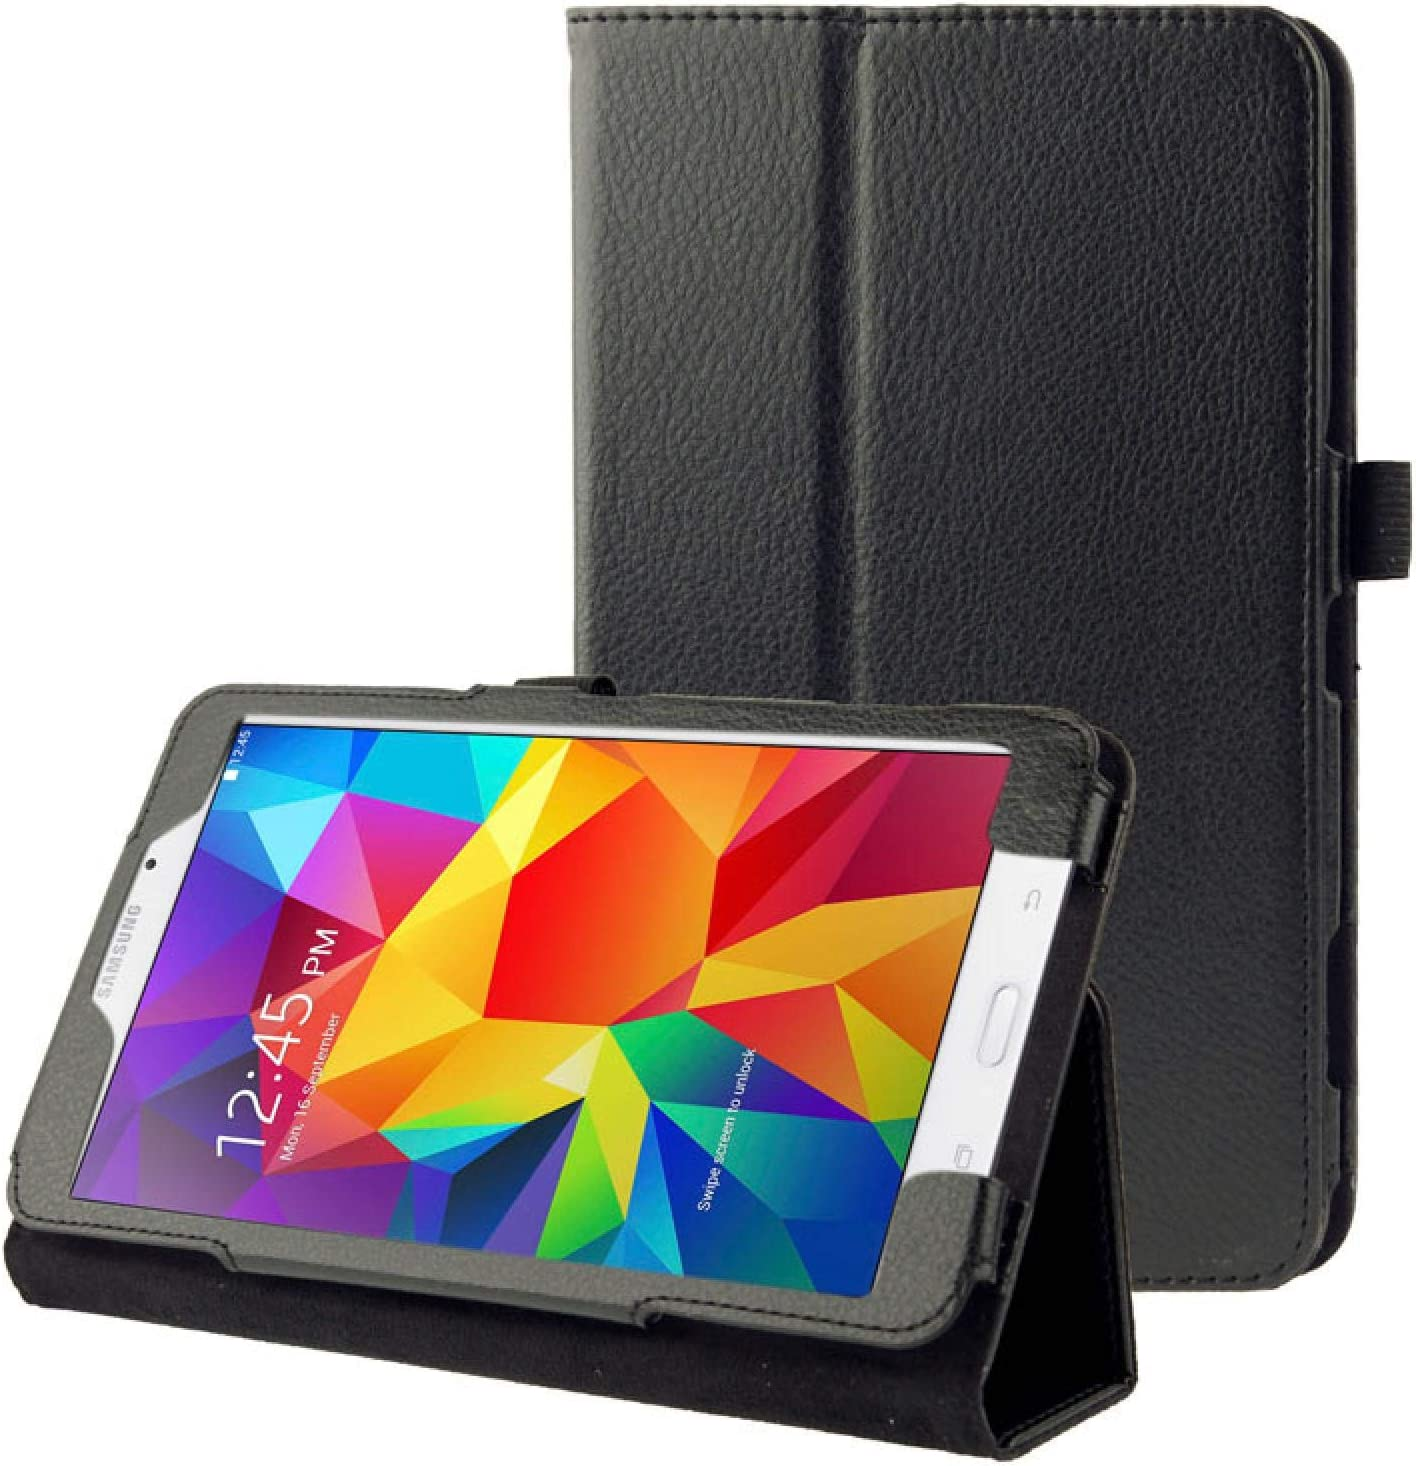 YKDY Tablet Case Litchi Texture Flip Leather Holder fo Boston Las Vegas Mall Mall with